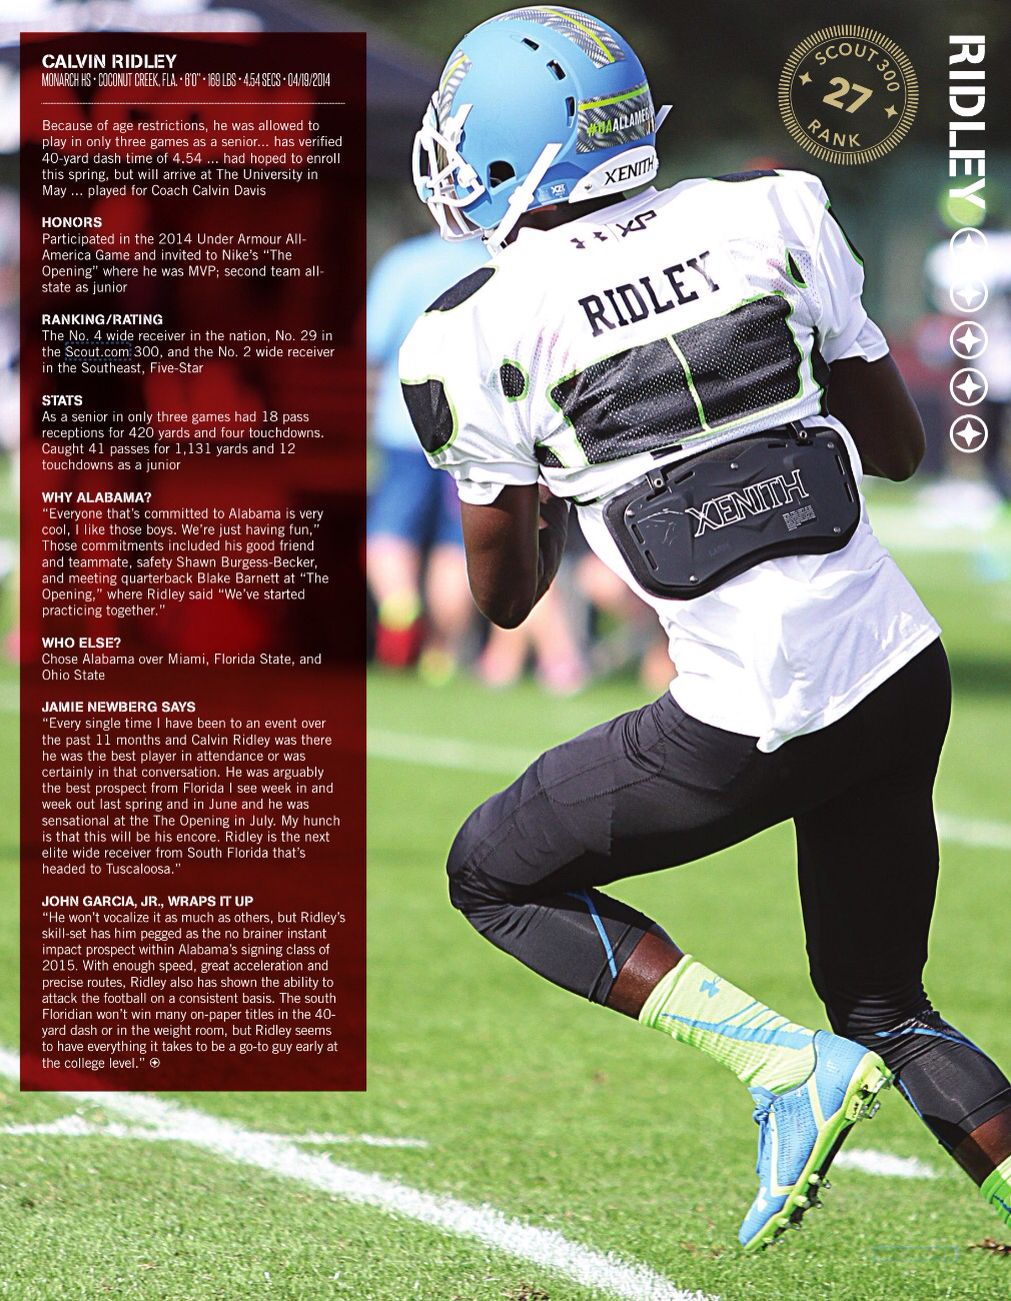 Calvin Ridley Wr Highly Touted 5 Star Prospect 2015 Alabama Recruit From The 2015 Bama Mag Recruiting Ye Alabama Crimson Tide Alabama Football Alabama